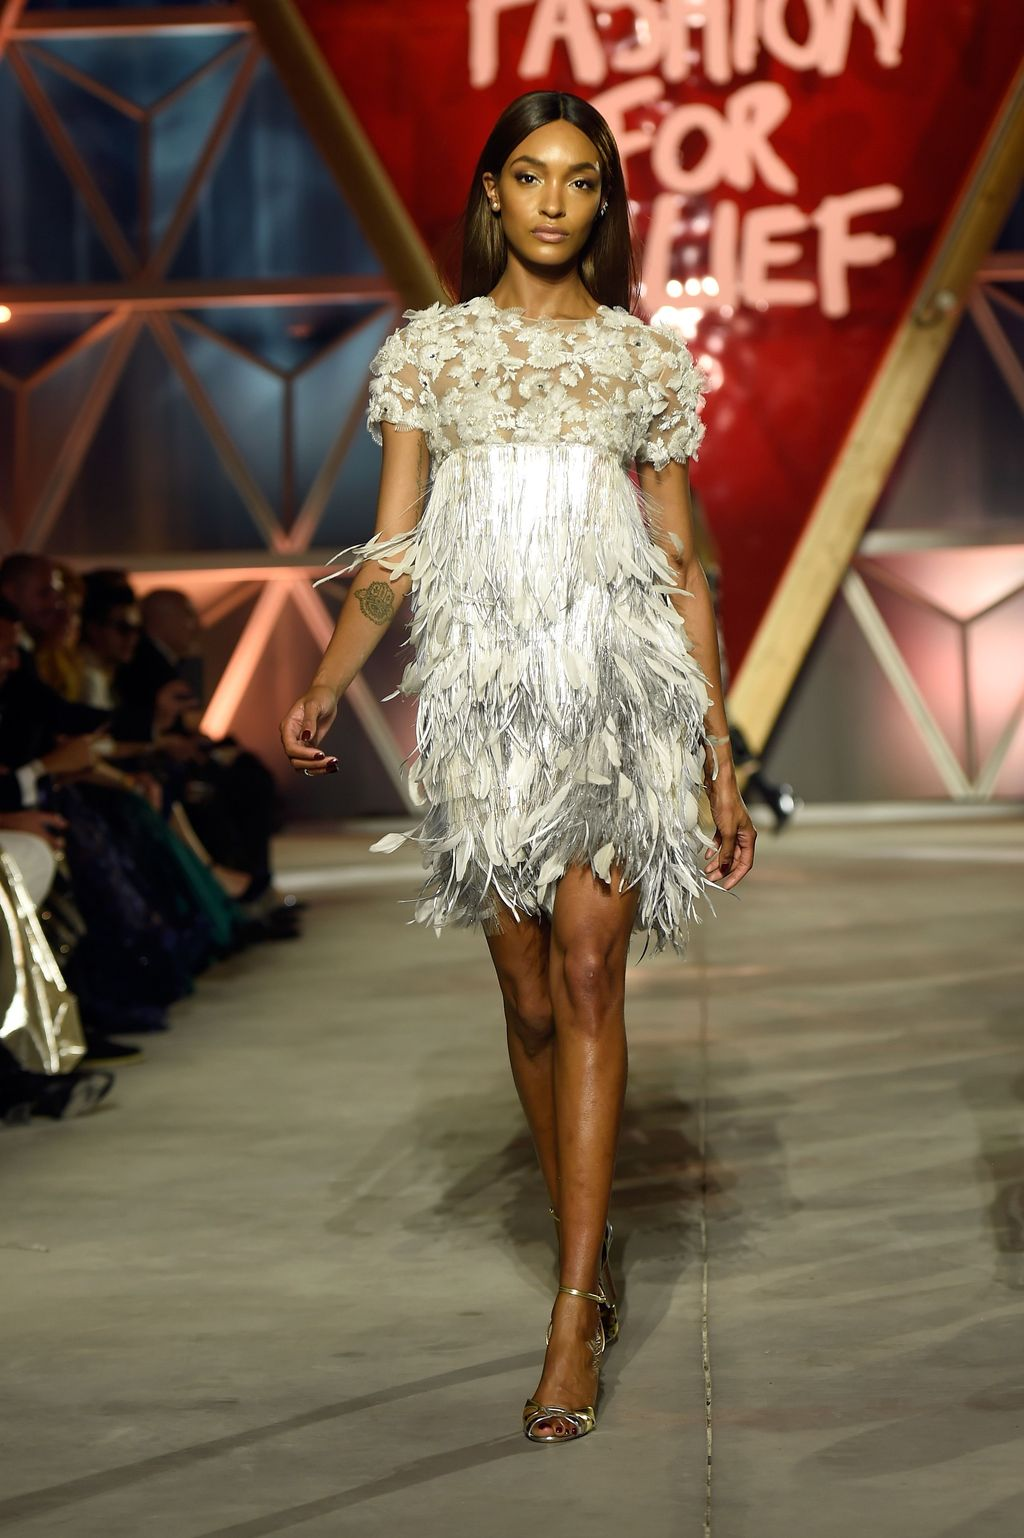 CANNES, FRANCE - MAY 21: Jourdan Dunn walks the runway at the Fashion for Relief event during the 70th annual Cannes Film Festival at Aeroport Cannes Mandelieu on May 21, 2017 in Cannes, France.  (Photo by Antony Jones/Getty Images)